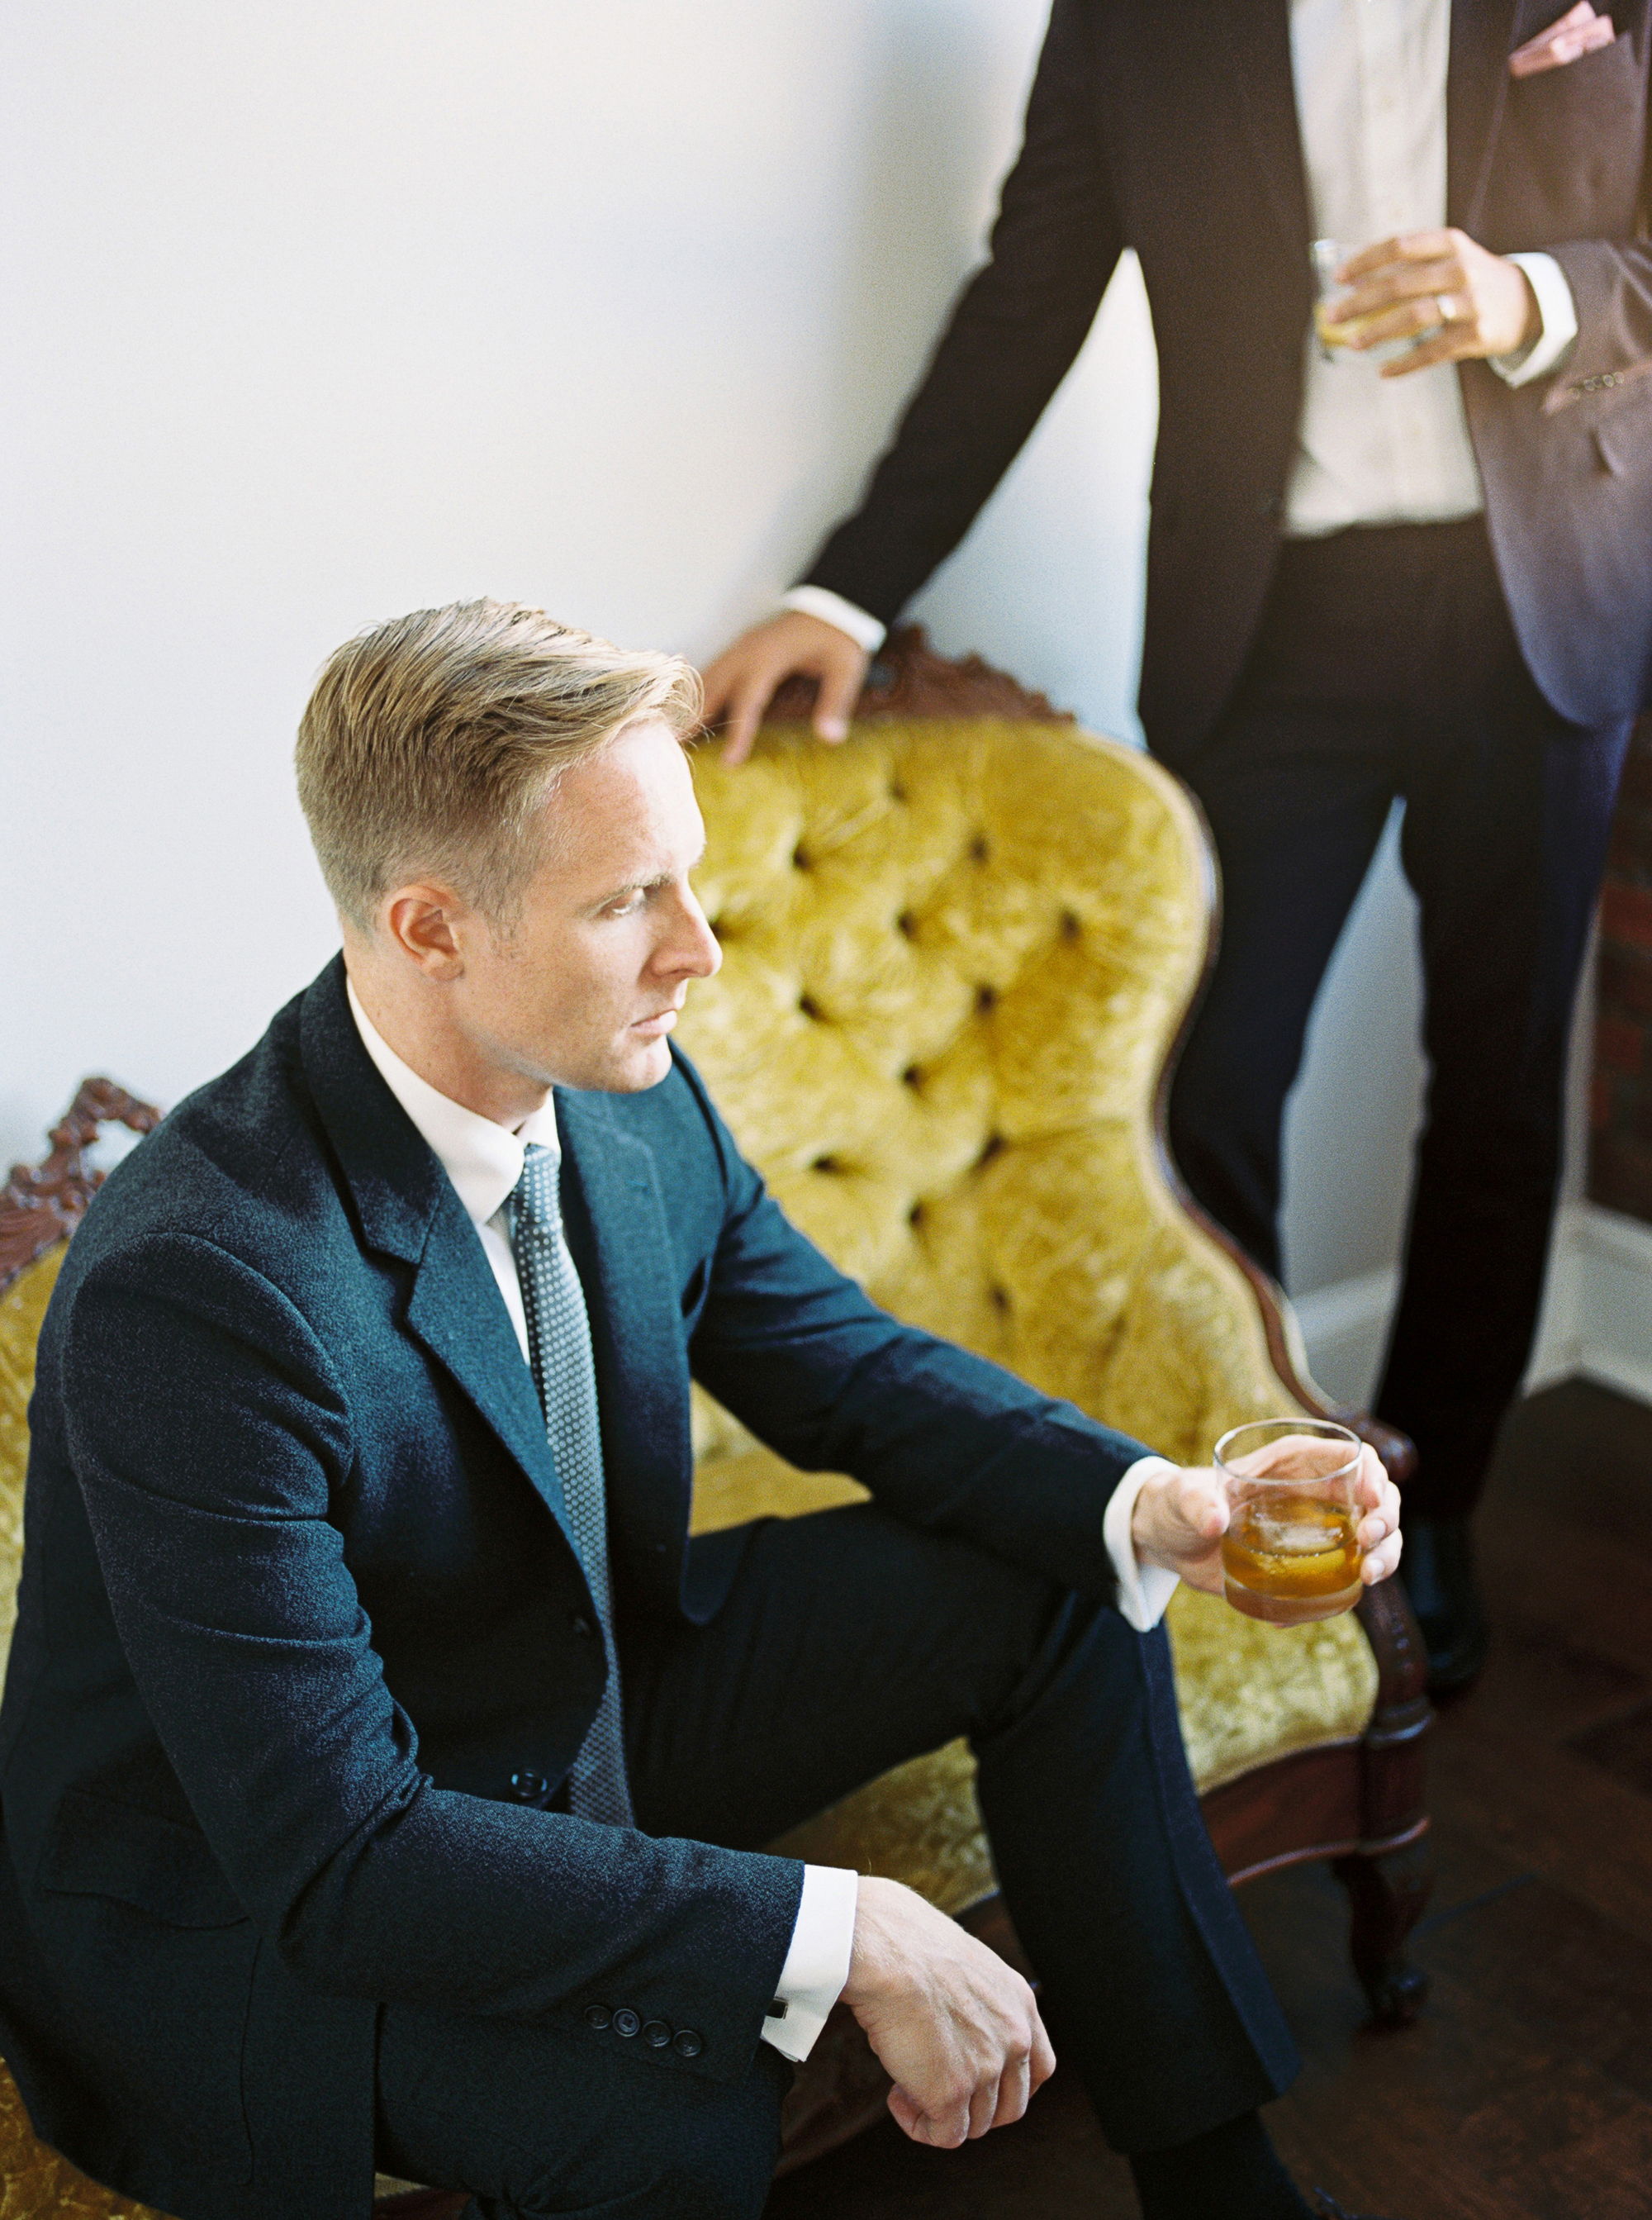 alexandra-elise-photography-mens-style-groom-style-film-wedding-photography-011